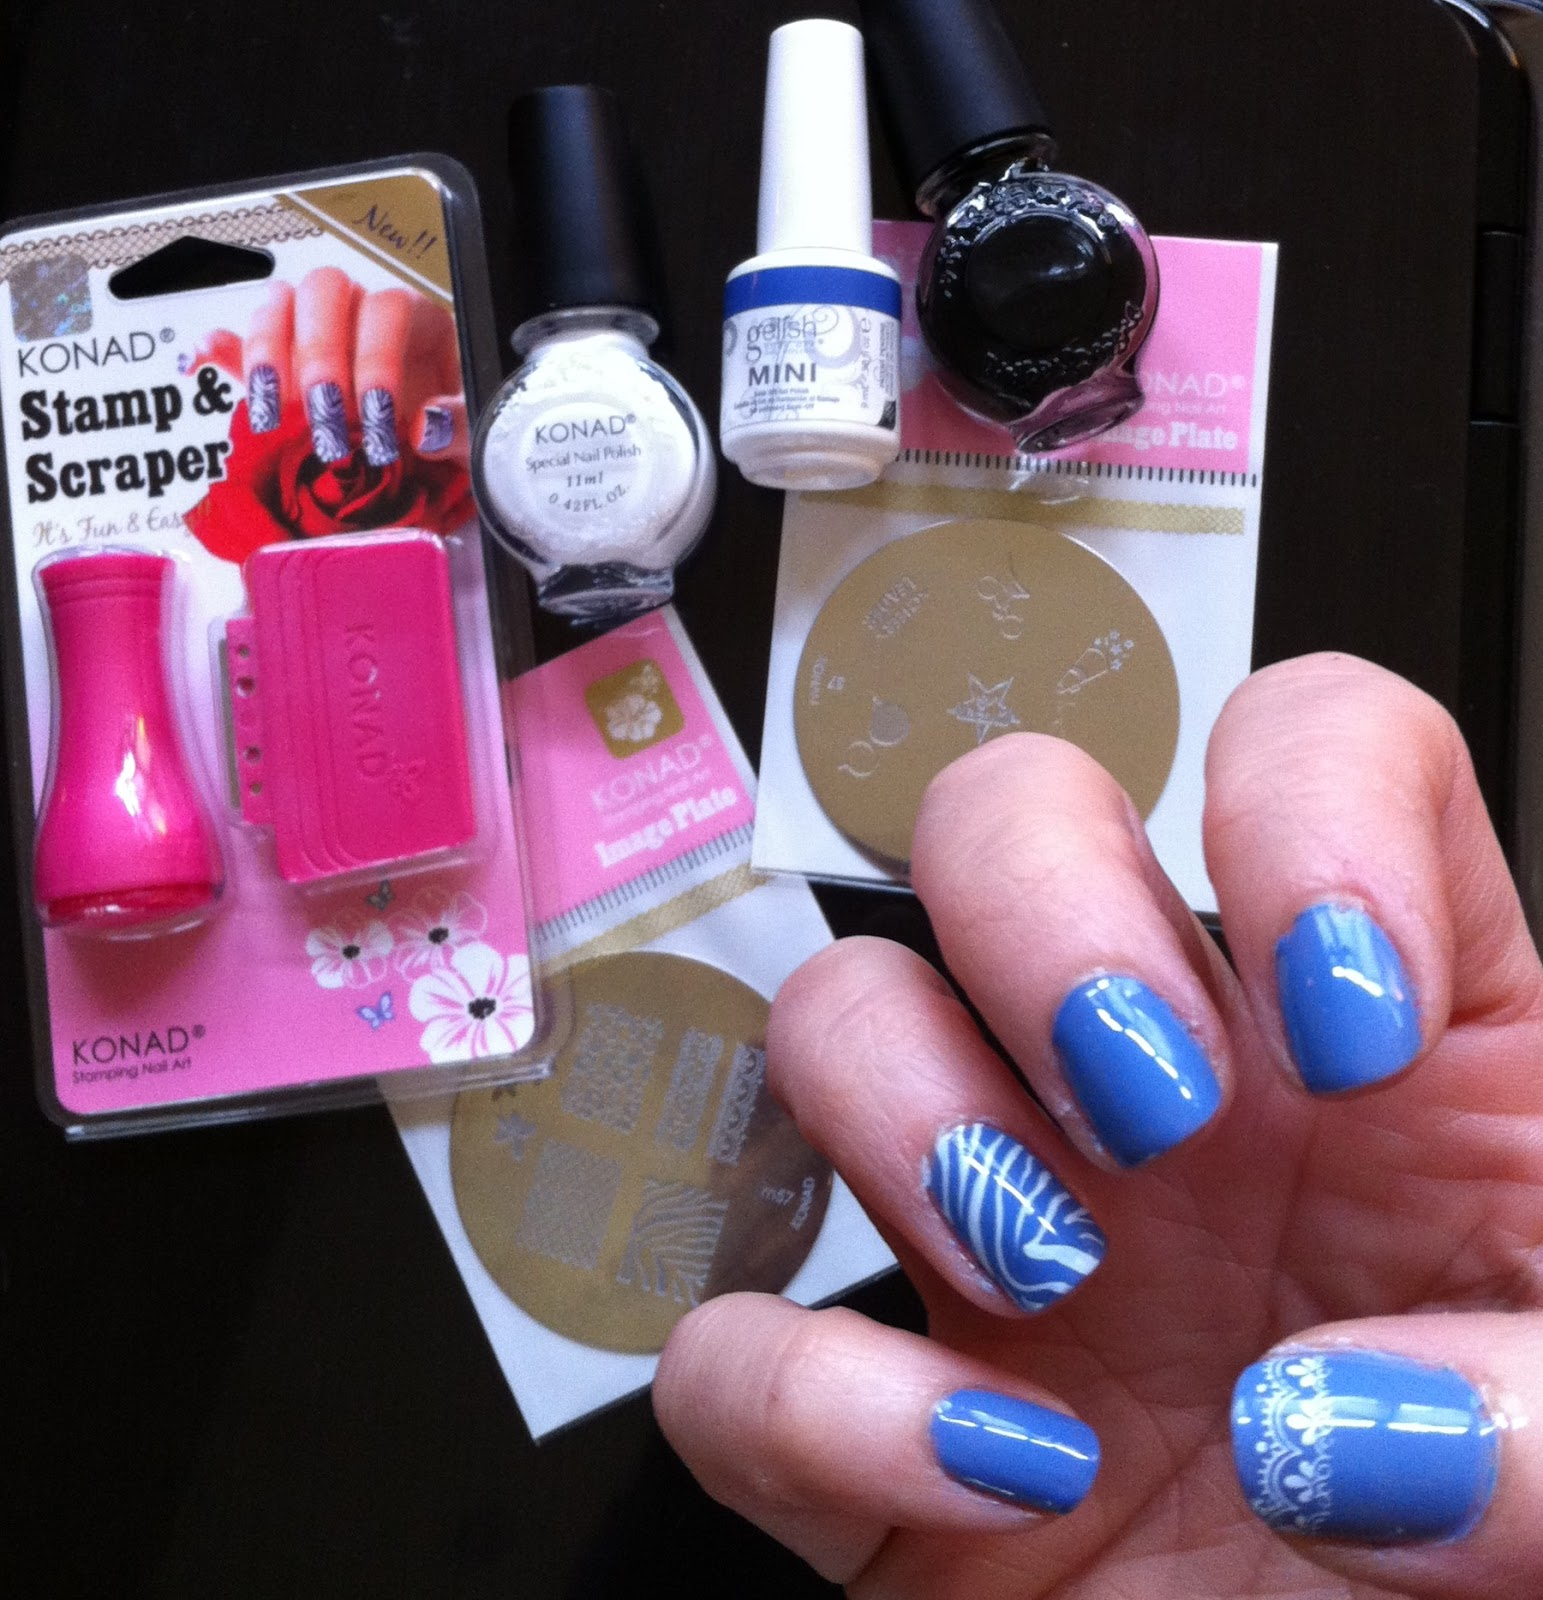 Gelish: Up In The Blue & Stamping Nail Art